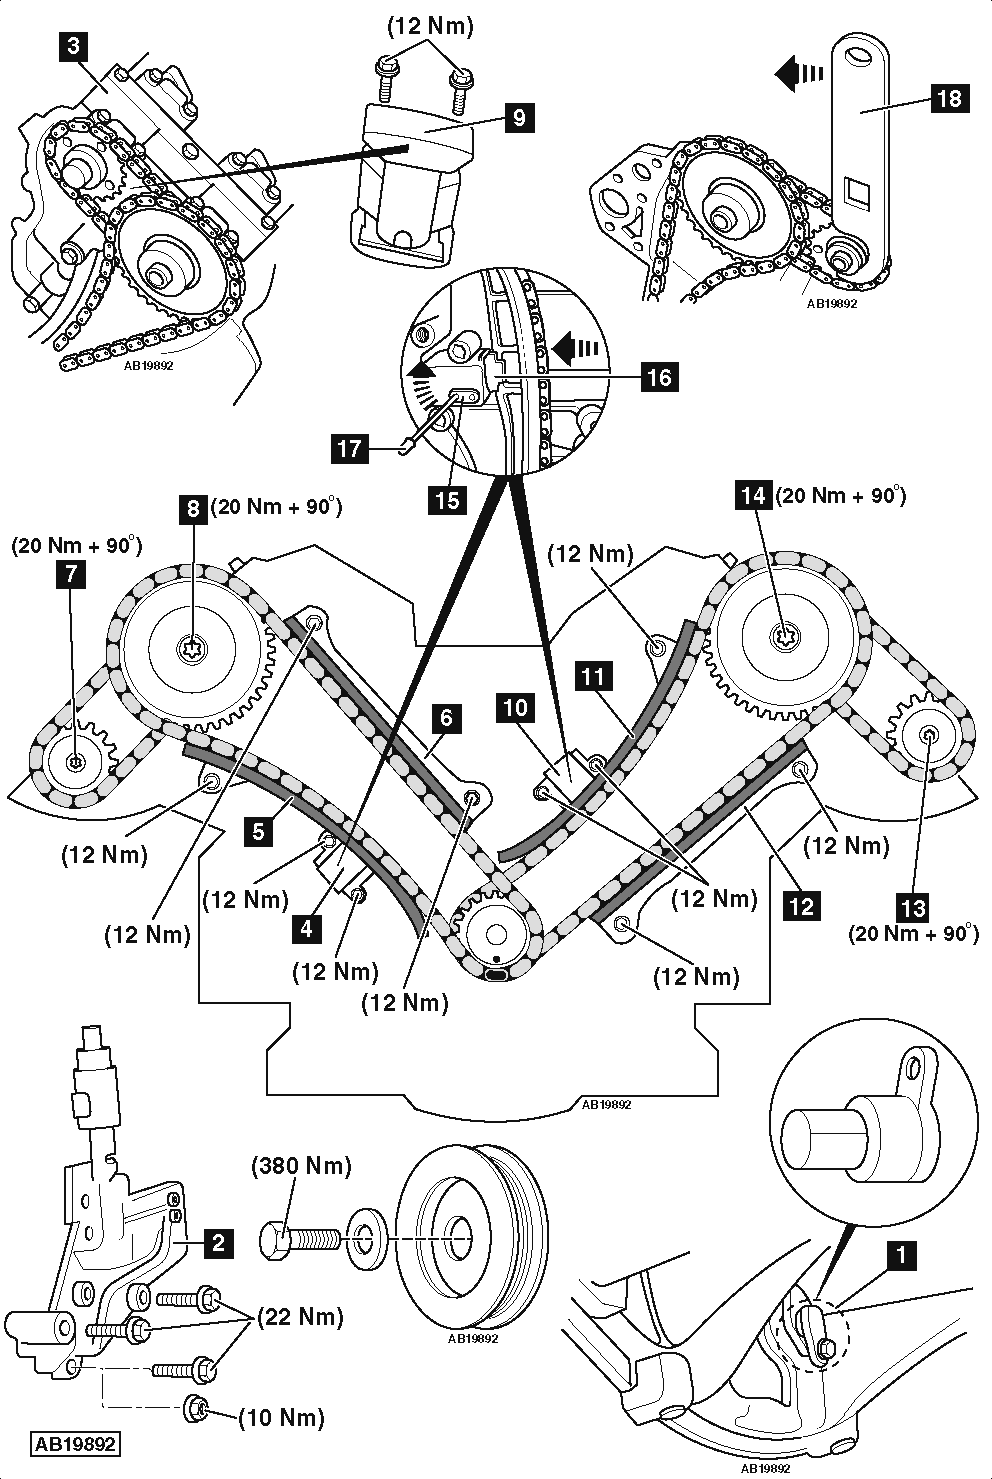 hight resolution of ford 5 4 triton engine problems likewise 97 ford f 150 4x4 4